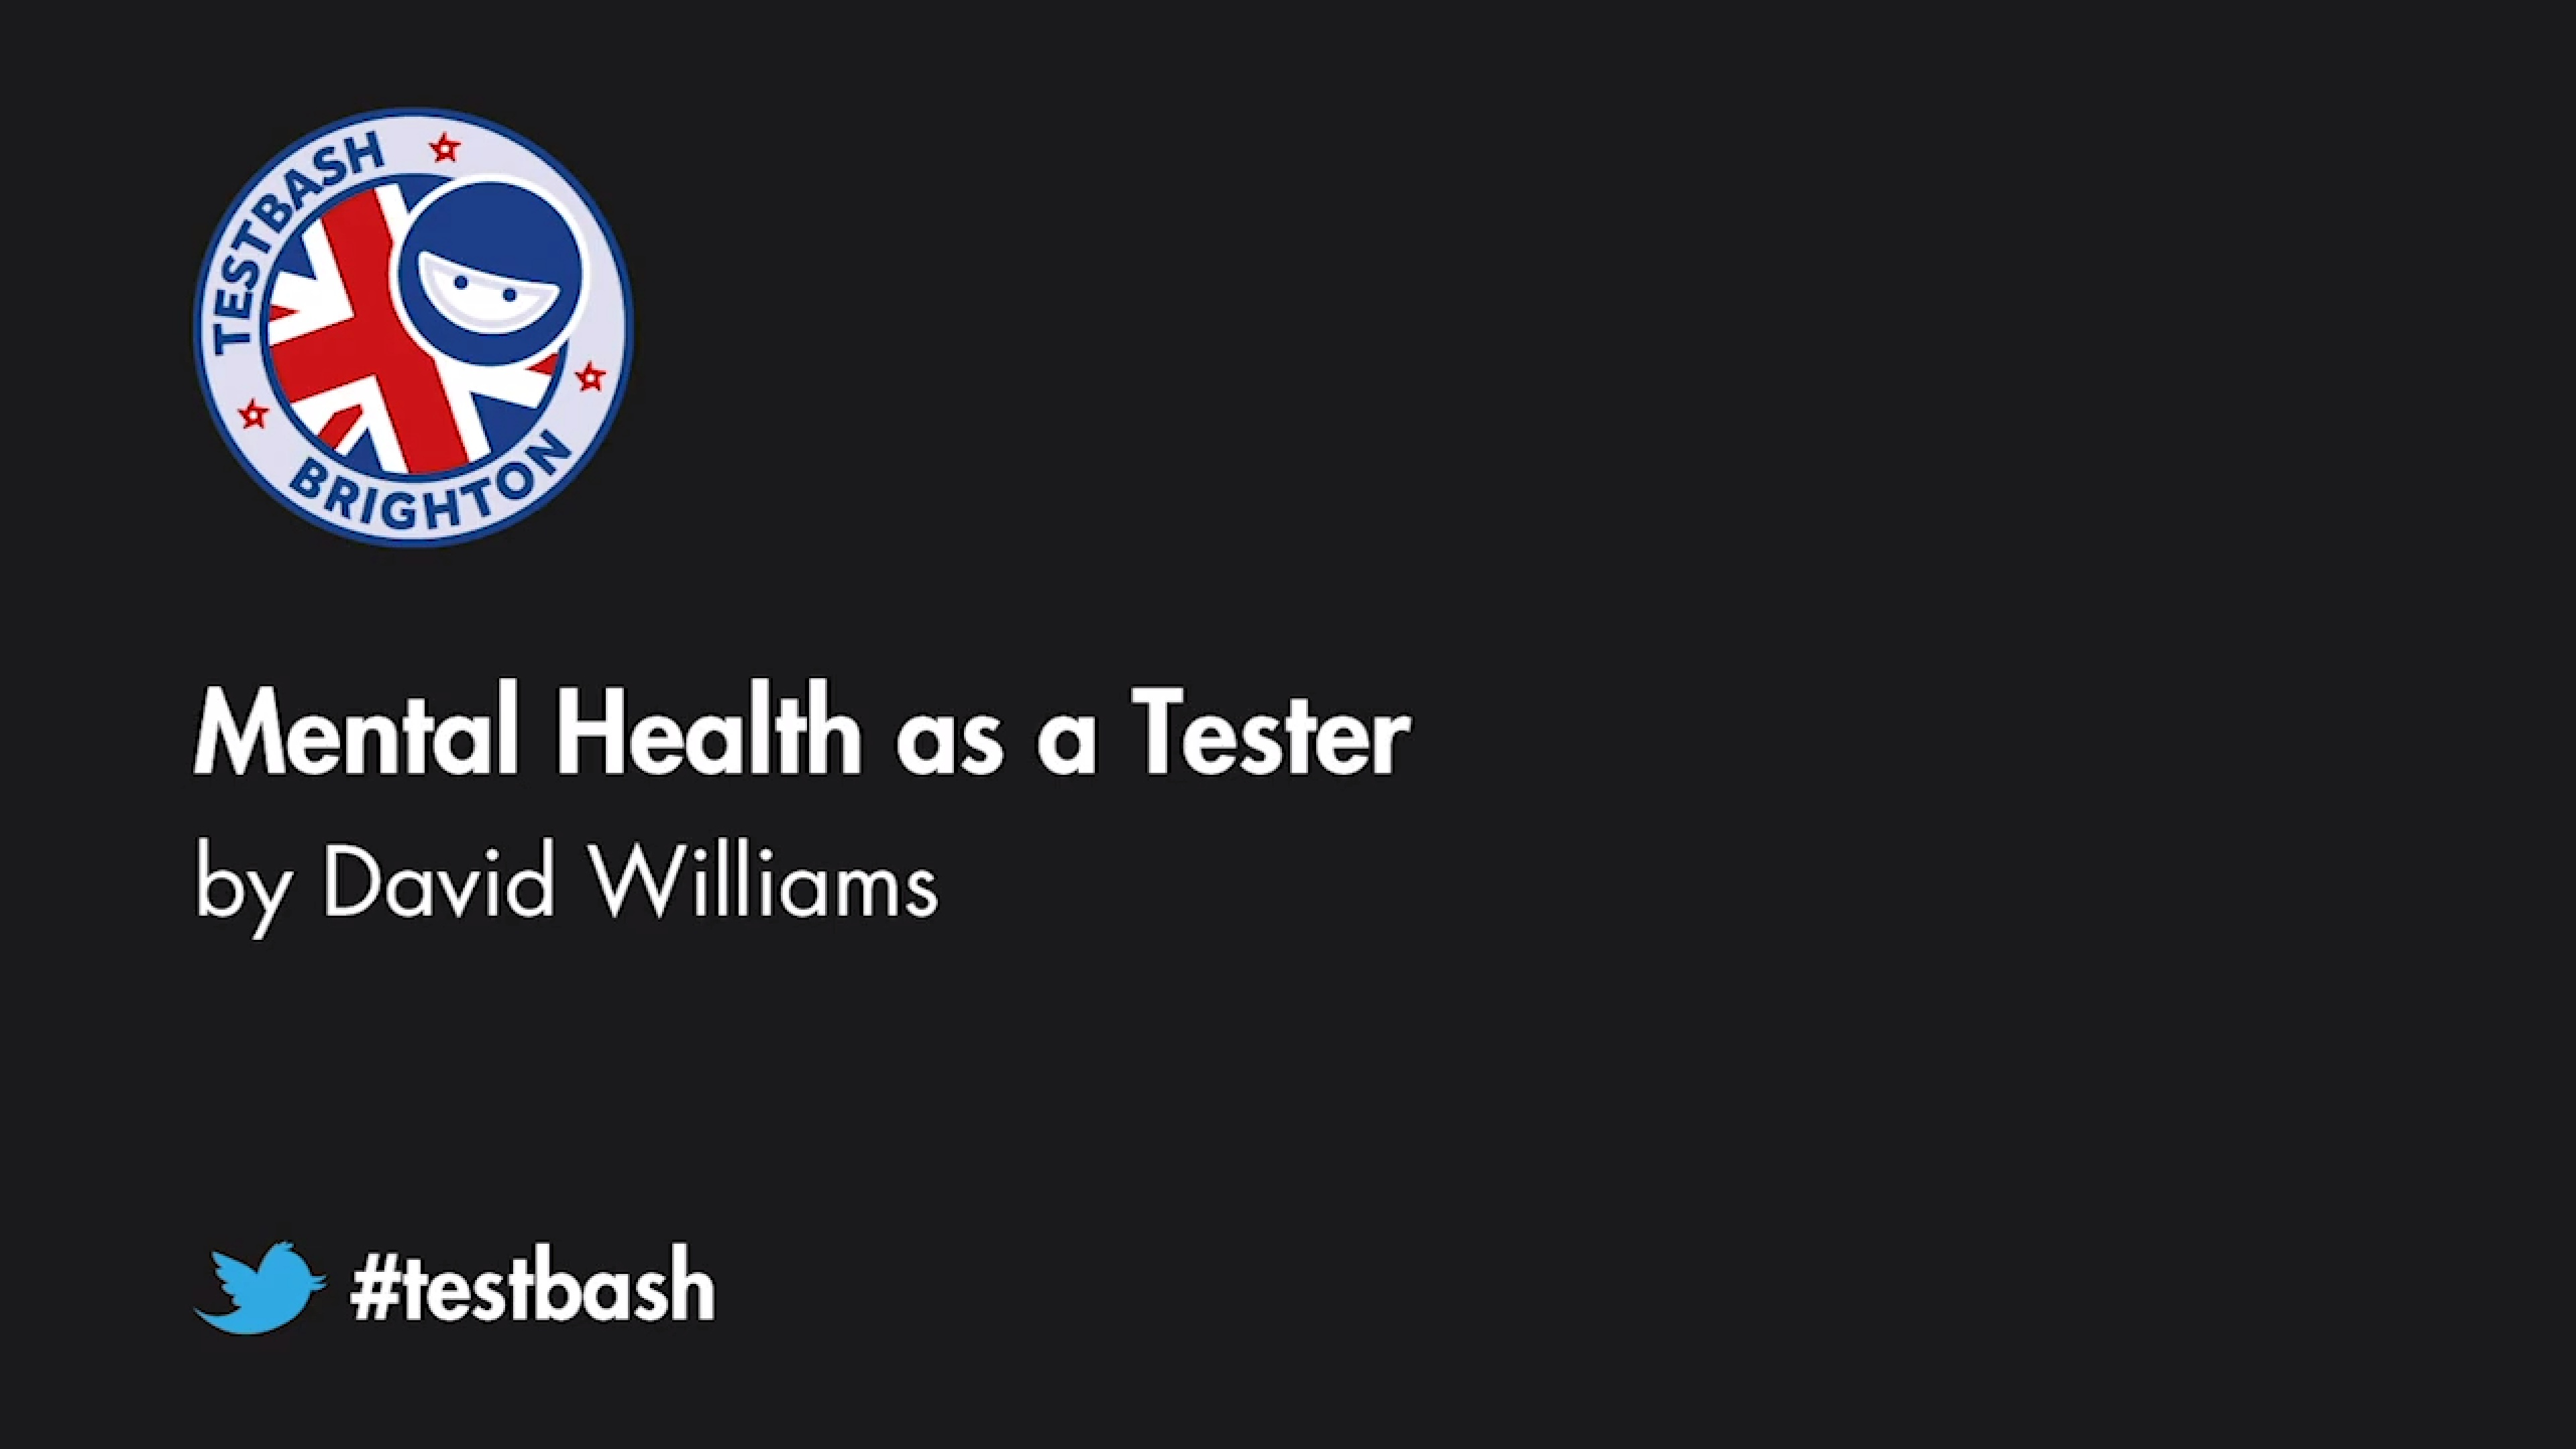 Mental Health as a Tester - David Williams